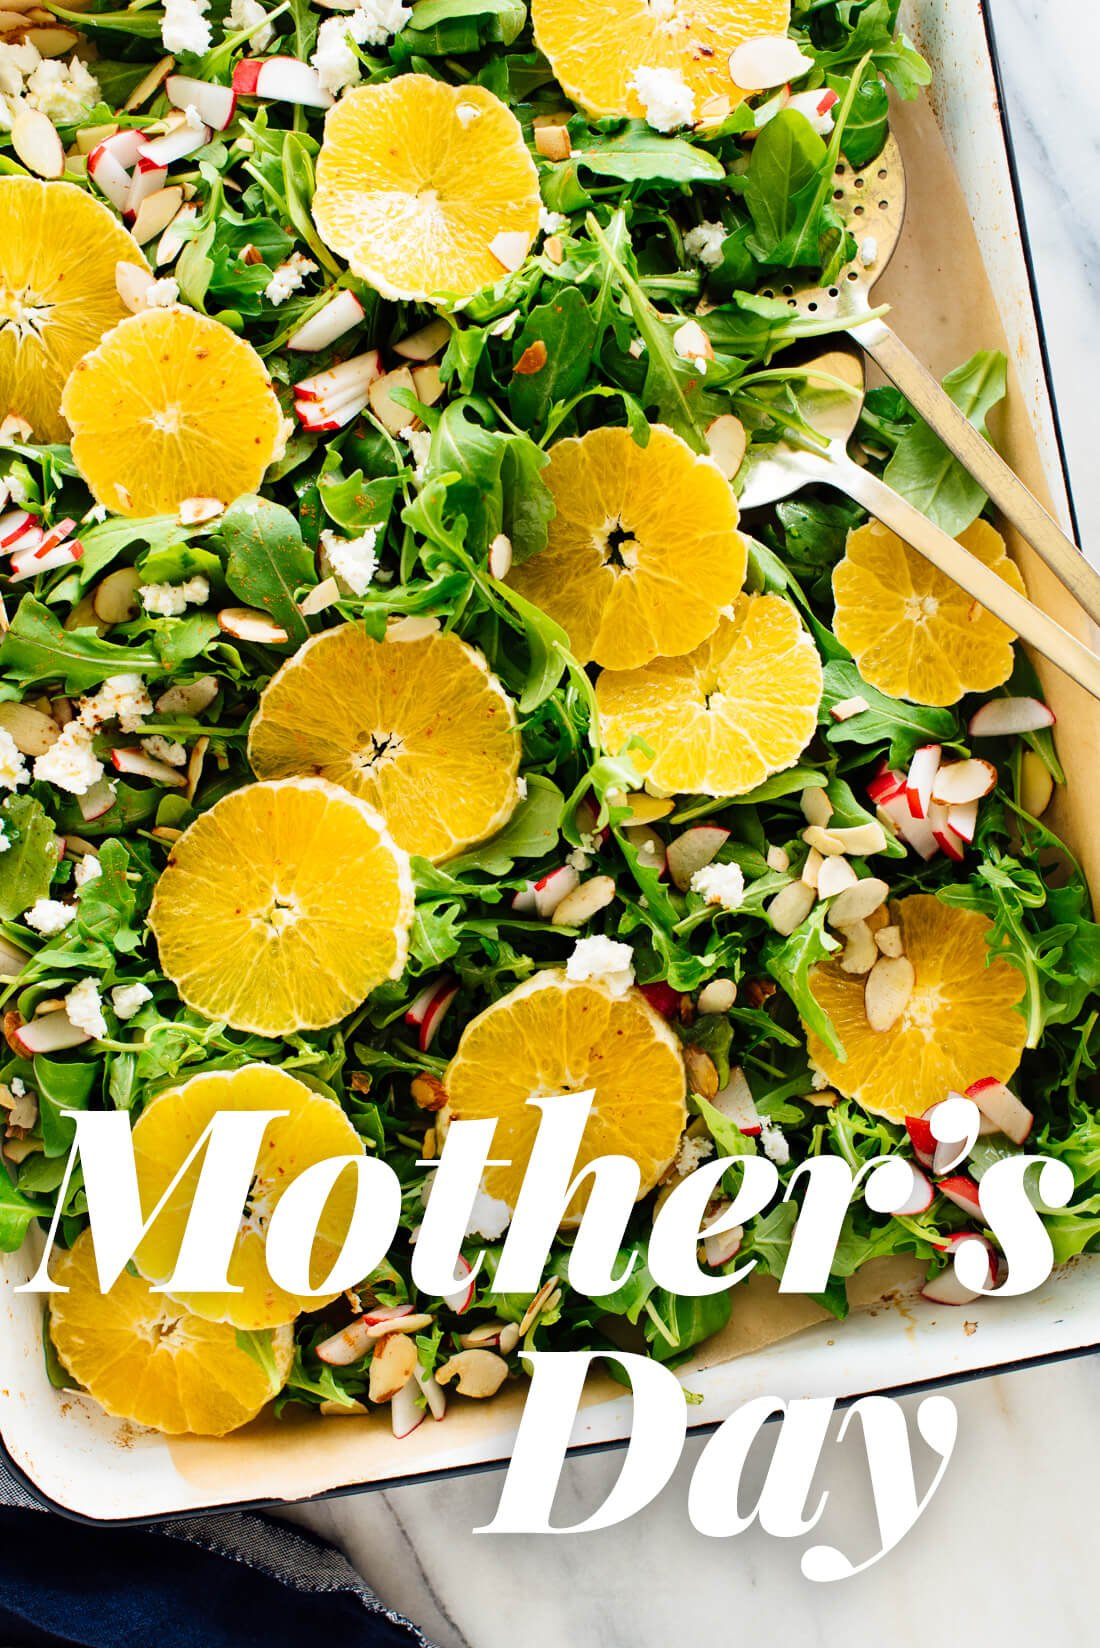 Find 25 fresh vegetarian recipes for Motheru0027s Day plus last-minute gift ideas from & 25 Cheerful Motheru0027s Day Recipes (Plus Last-Minute Gifts) - Cookie ...